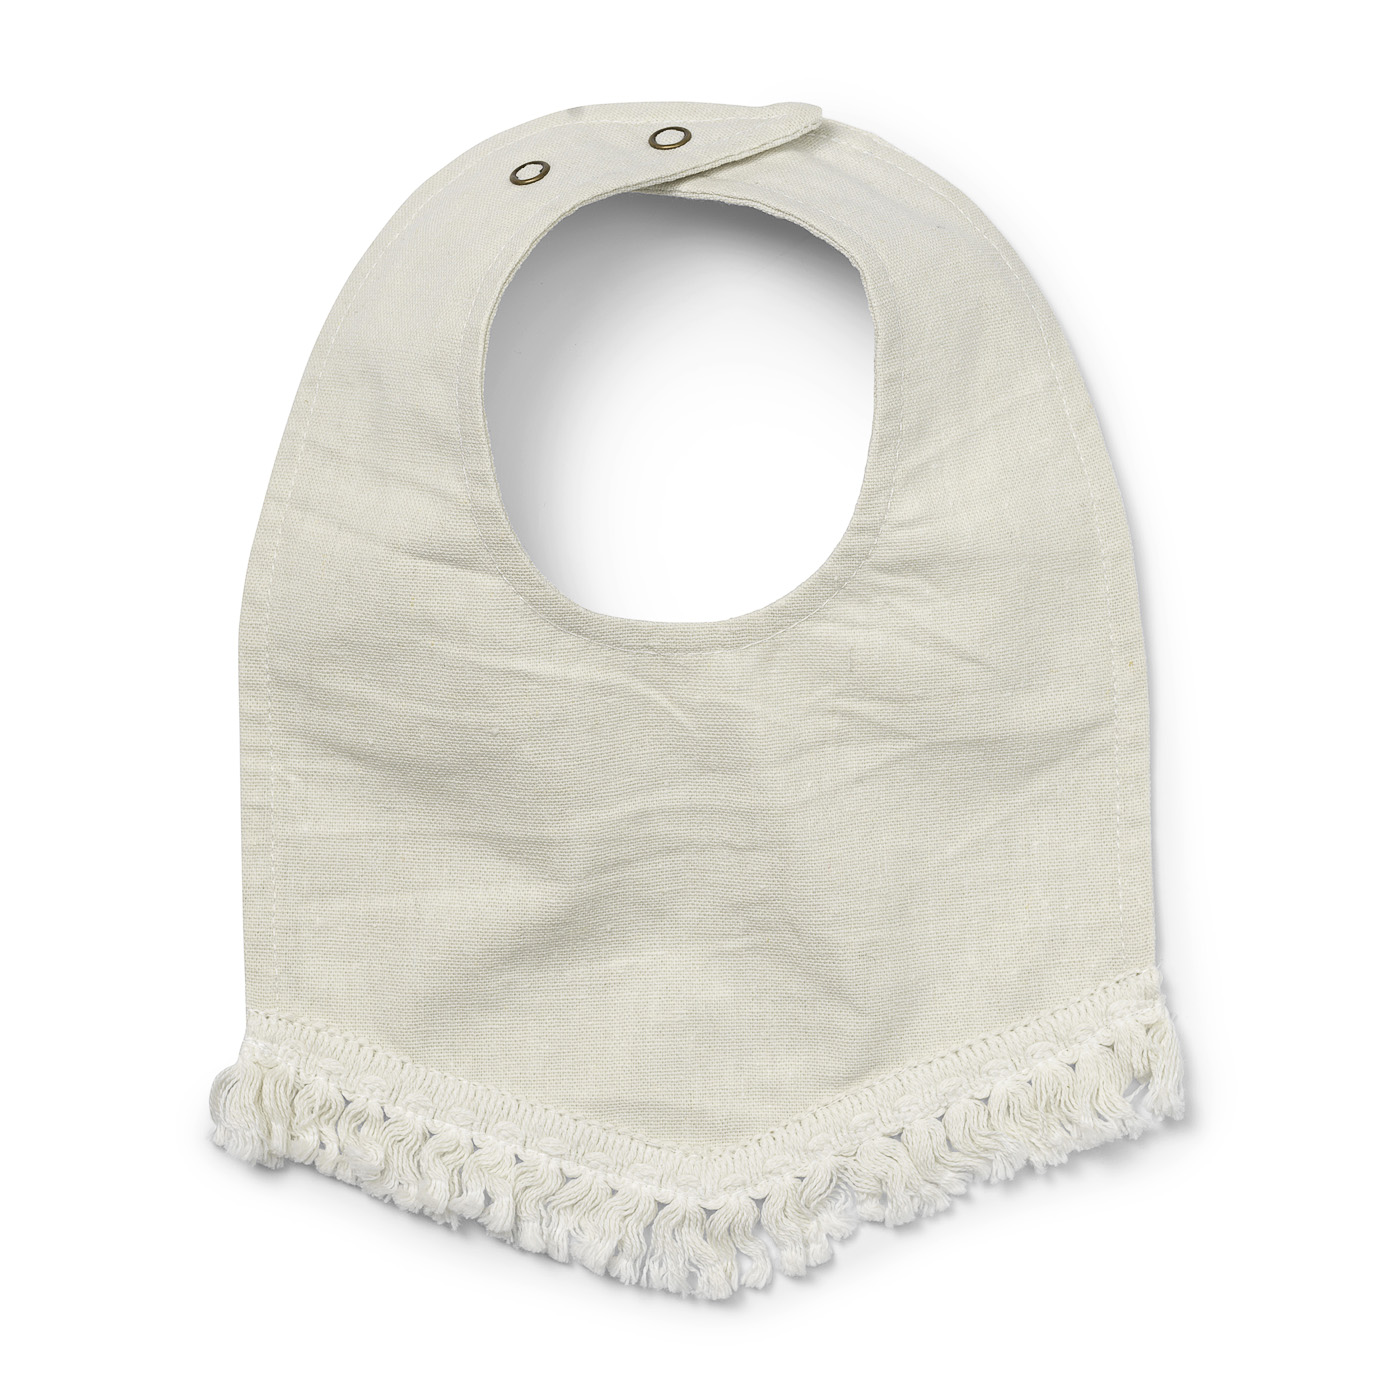 Elodie Details - Drooling Bib - Lilly White